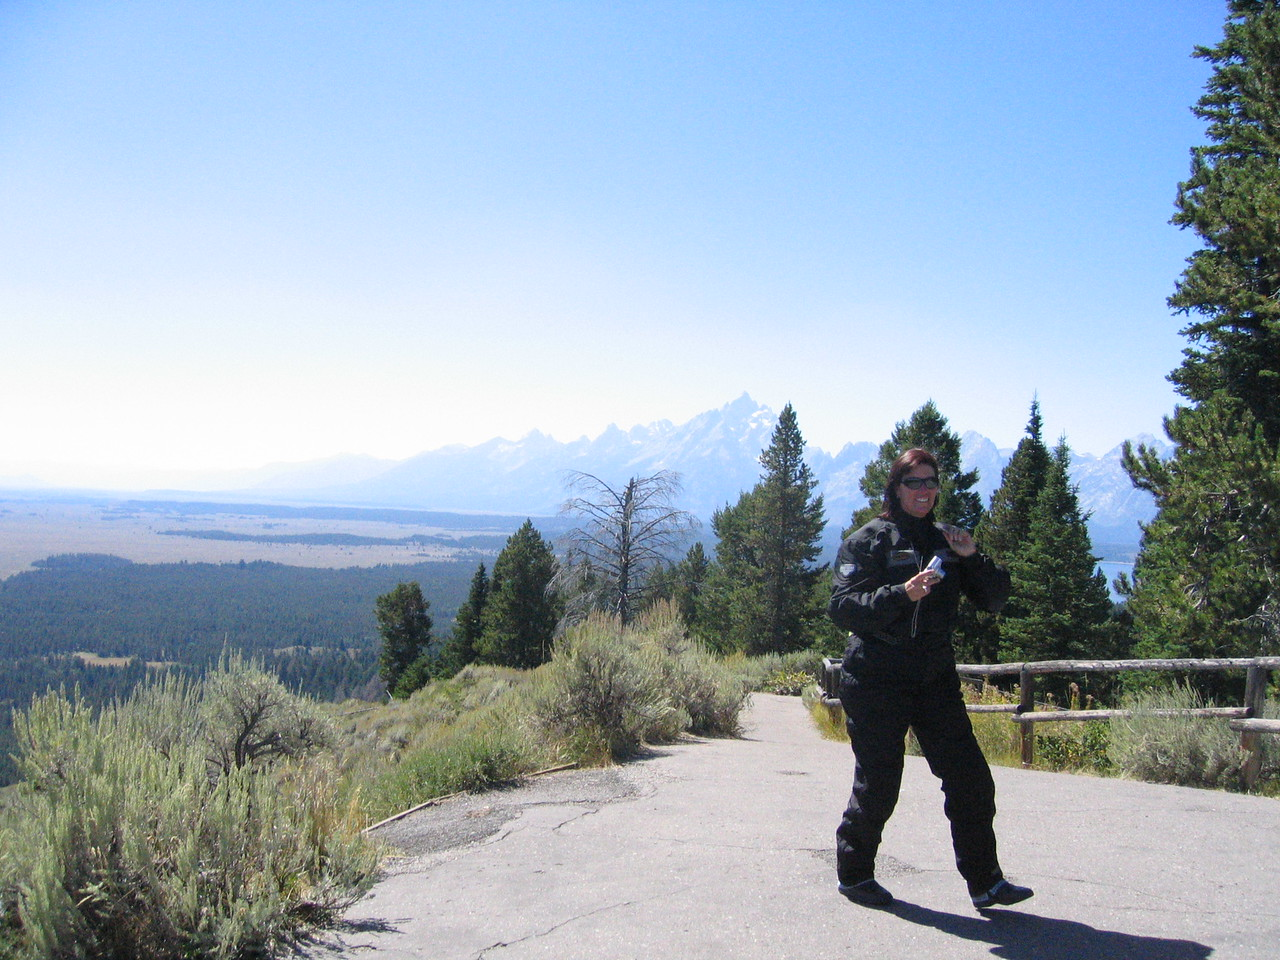 Deb Sauer takes a picture, with the Grand Tetons looming in the background.